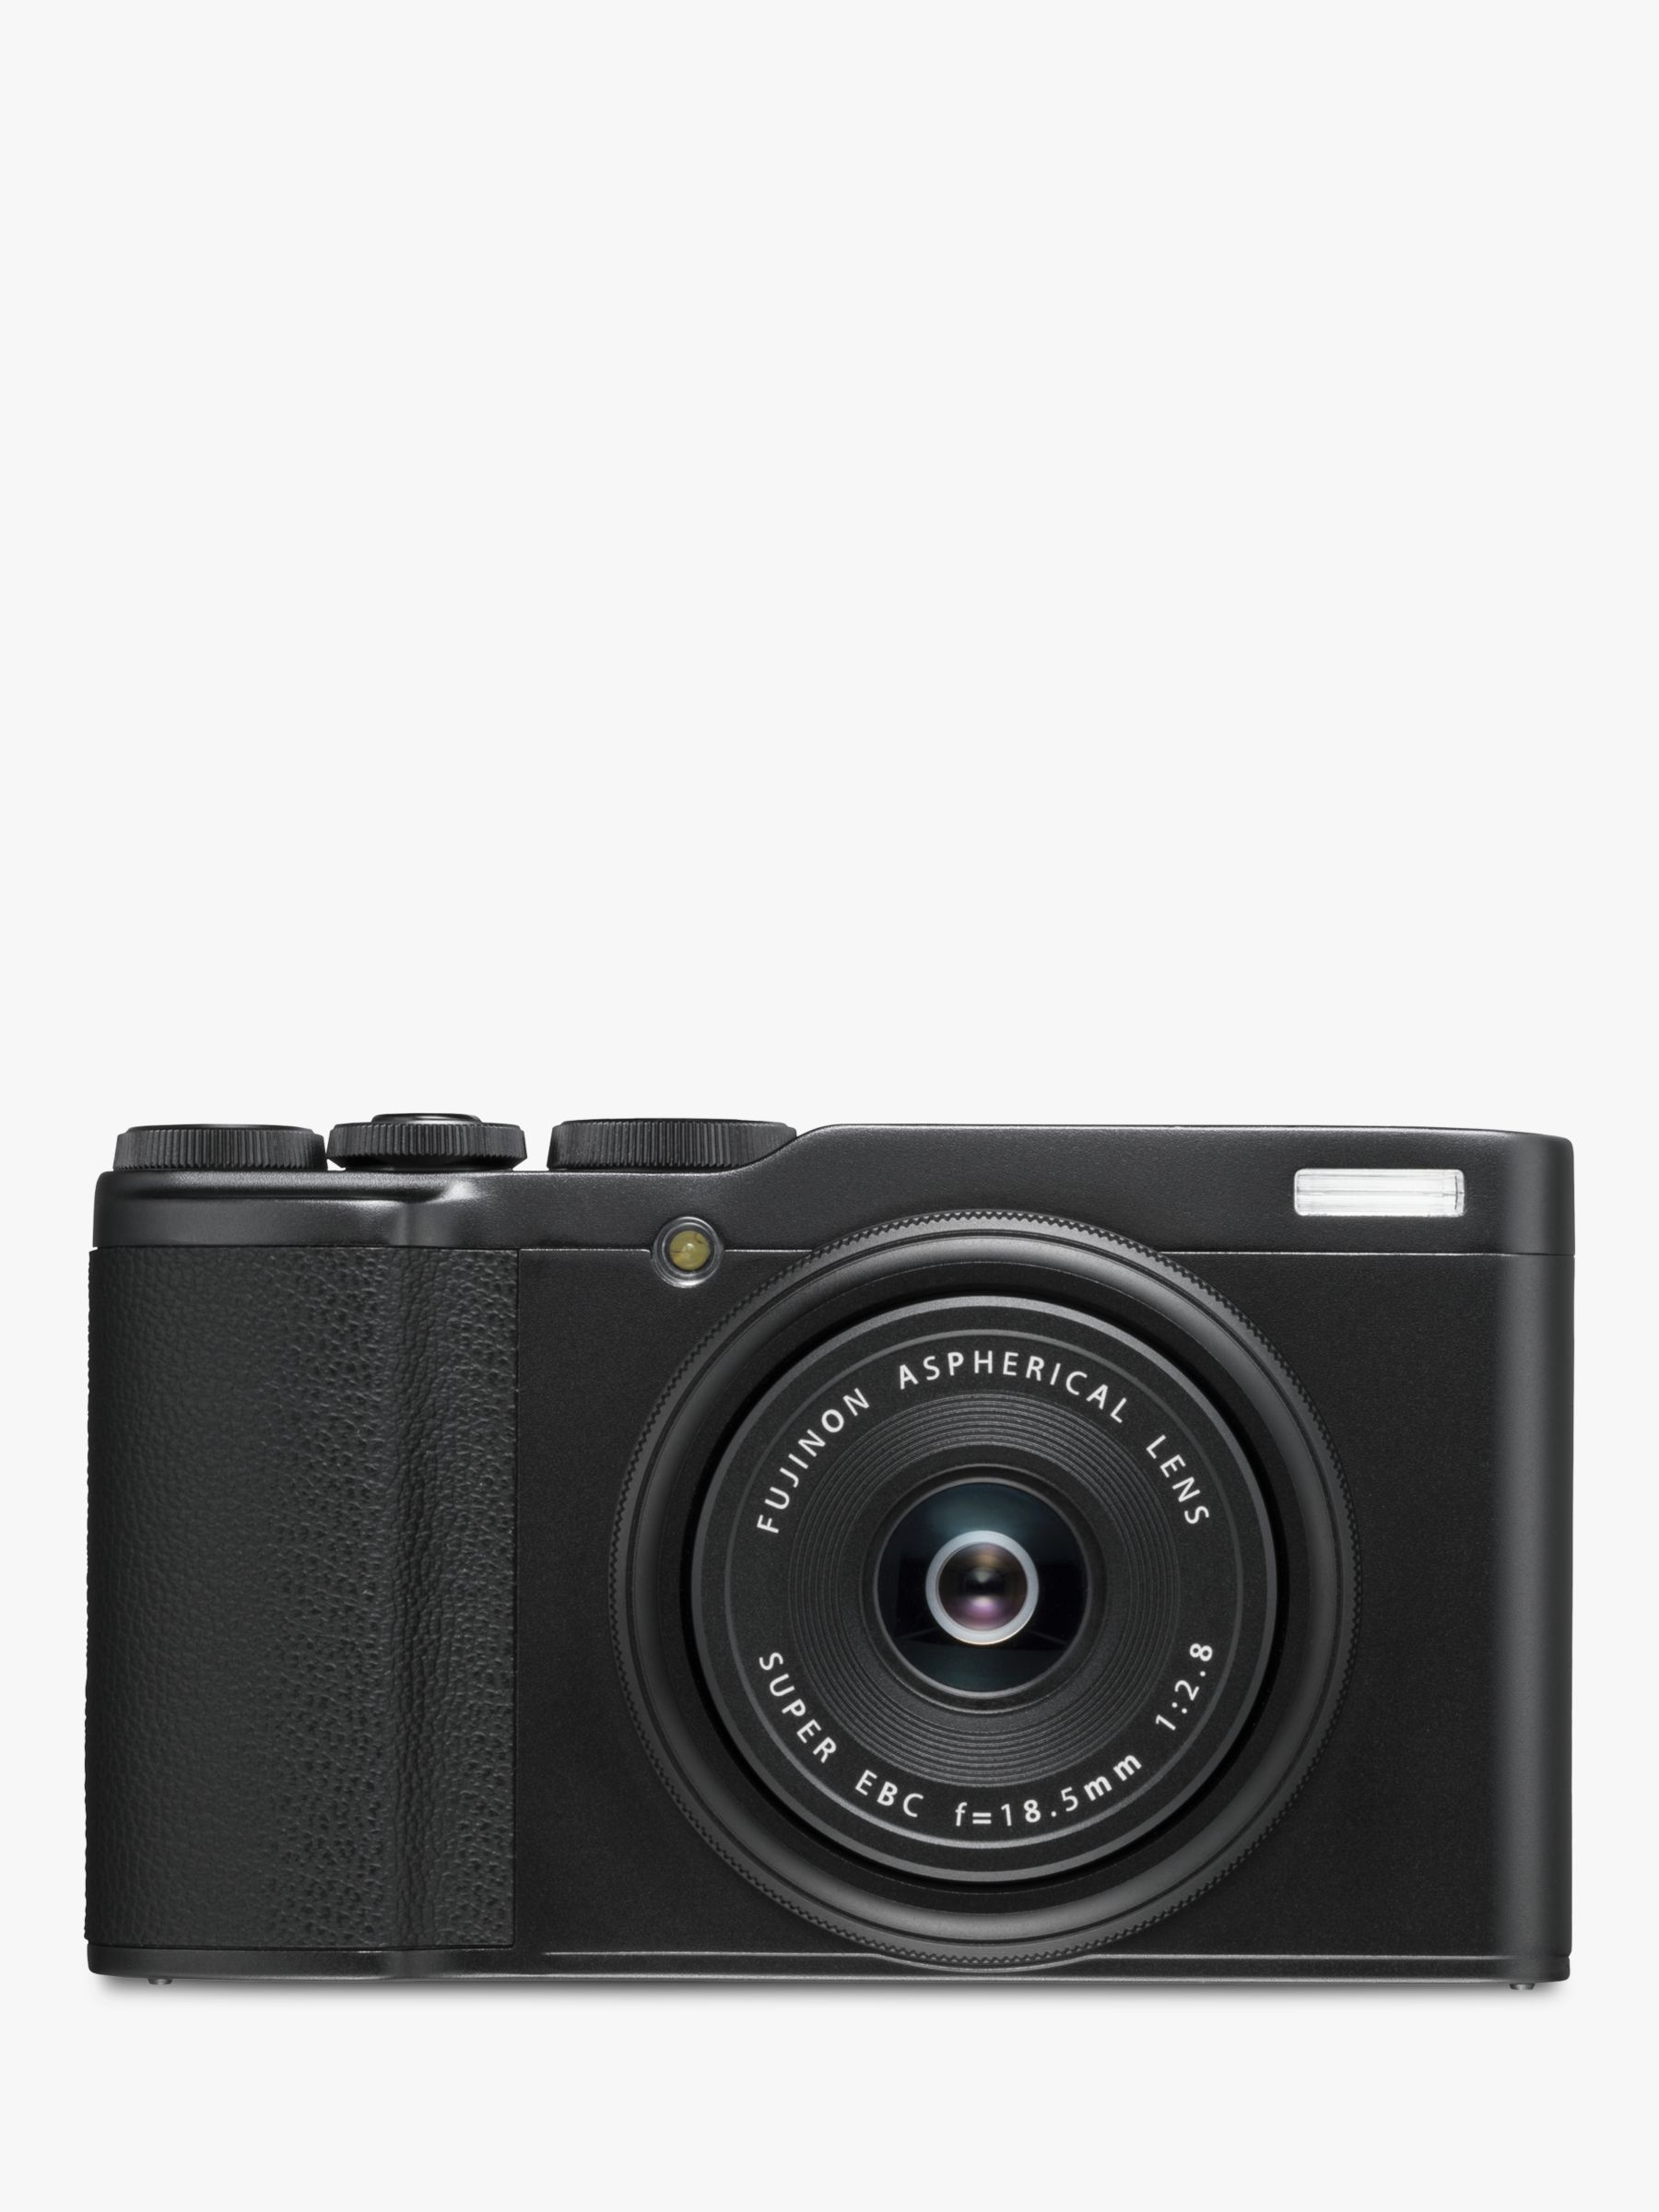 Fujifilm Fujifilm XF10 Digital Compact Camera with 18.5mm Wide Angle Lens, 4K UHD, 24.2MP, Wi-Fi, Bluetooth, 3 LCD Touch Screen